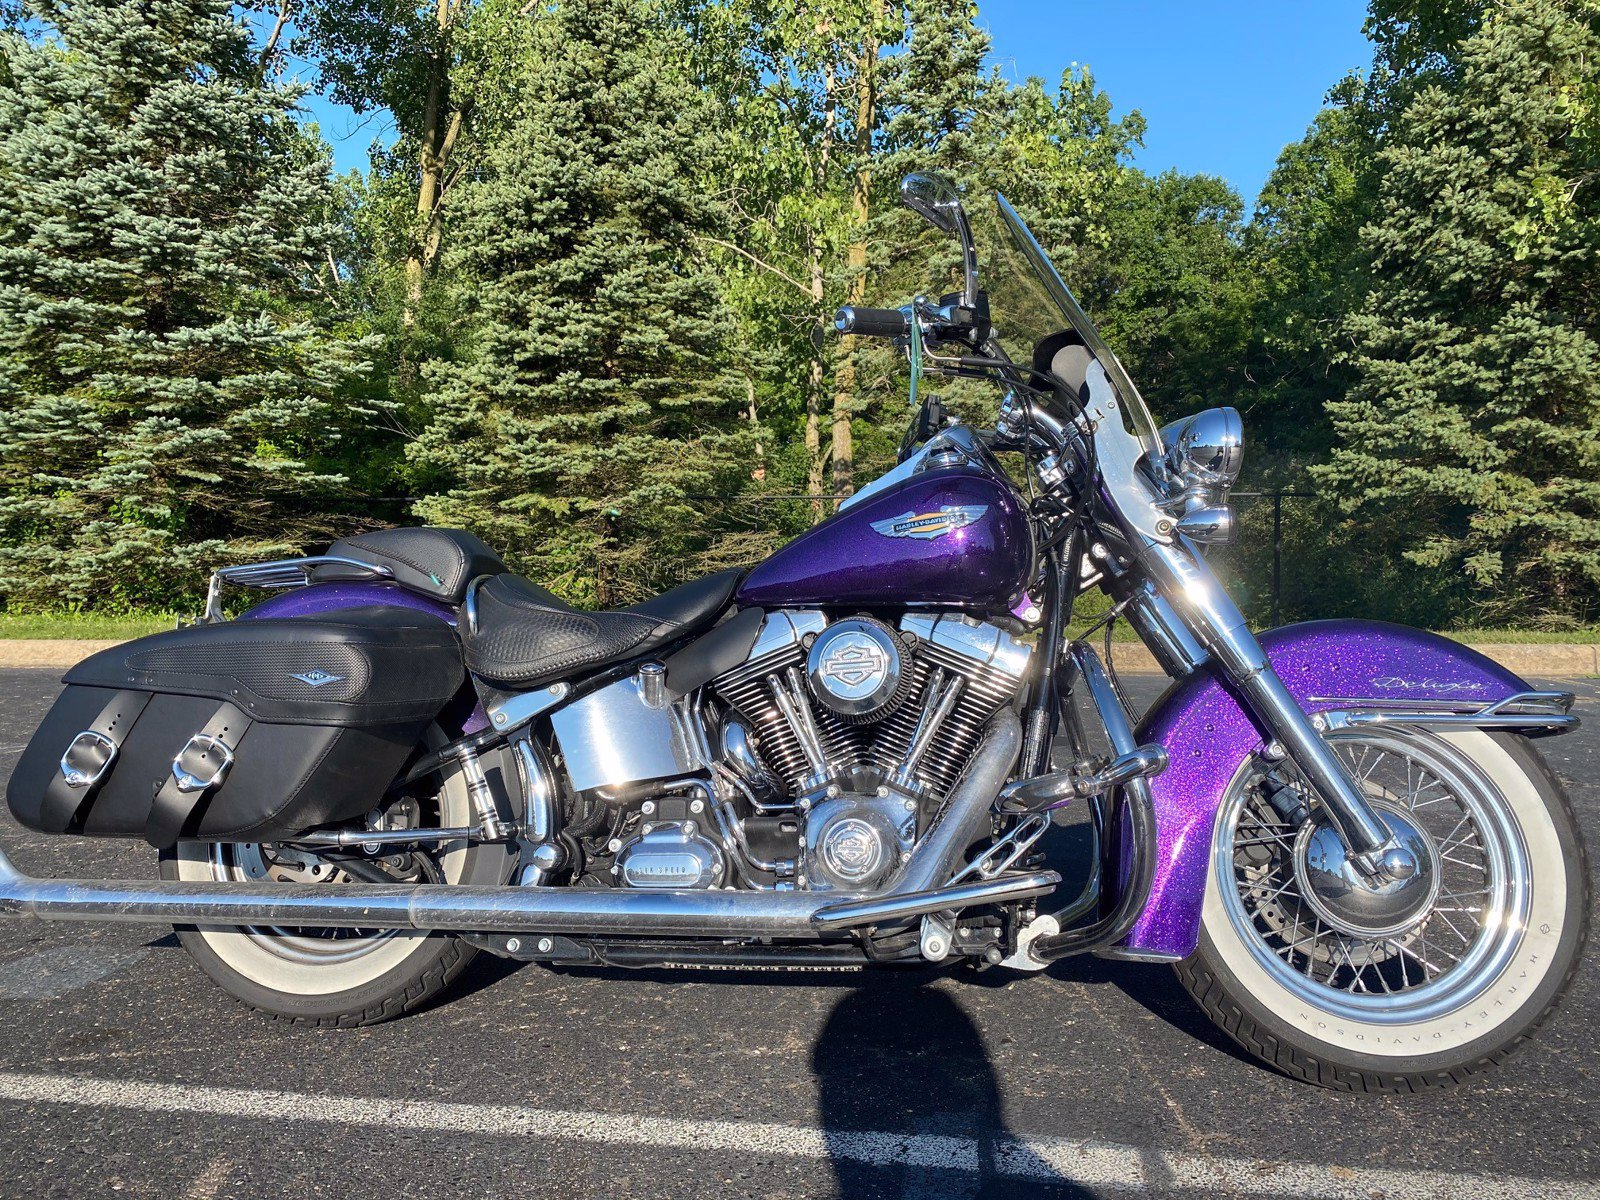 Pre-Owned 2014 Harley-Davidson Softail Deluxe FLSTN Chrome